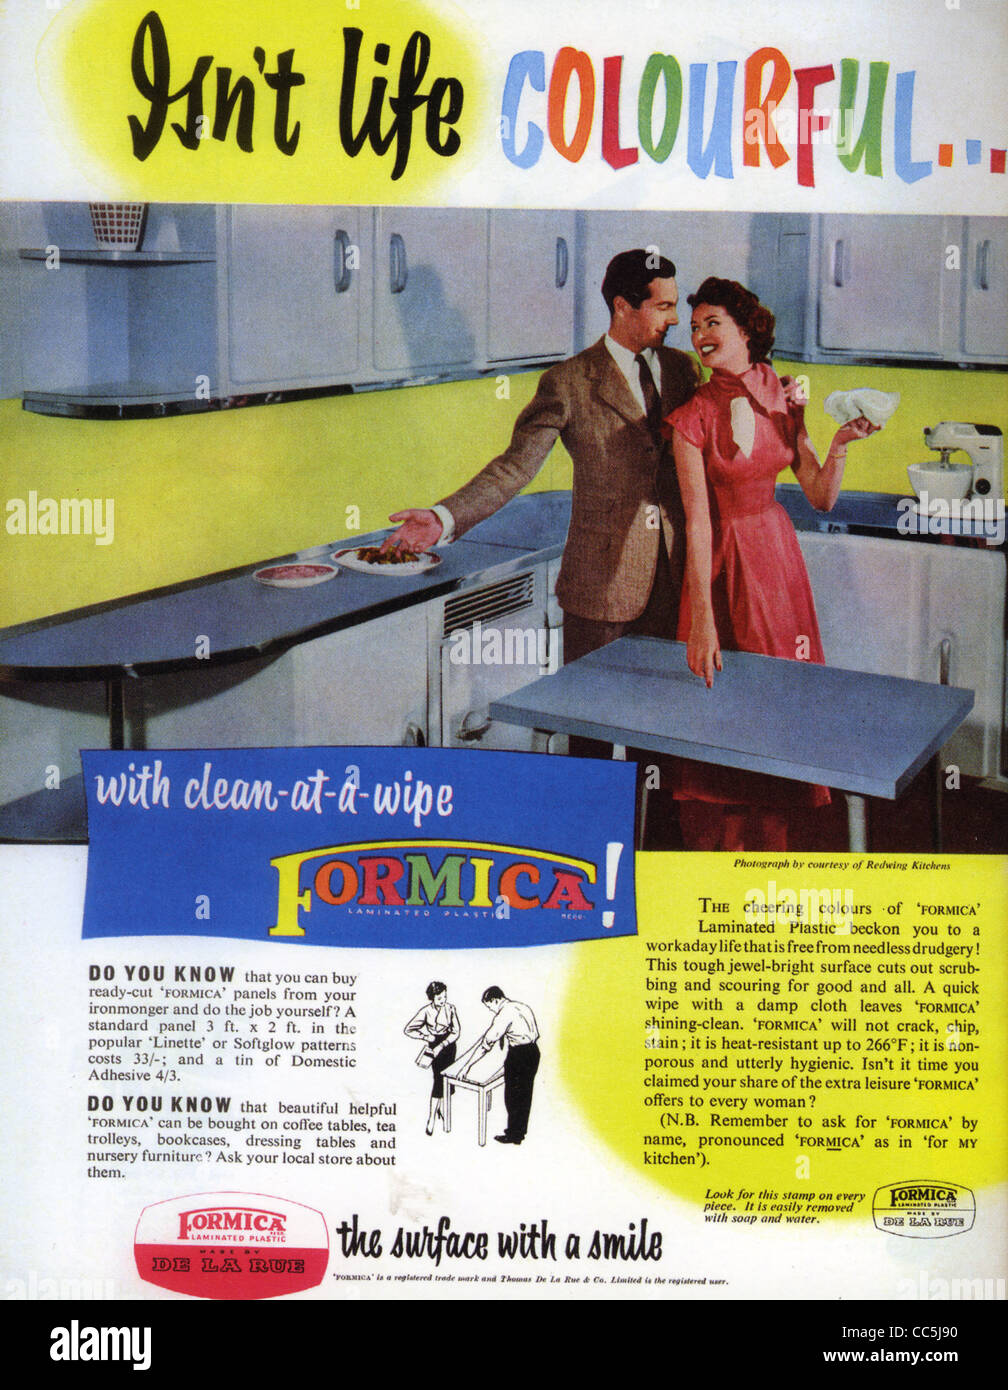 FORMICA advert about 1970 - Stock Image